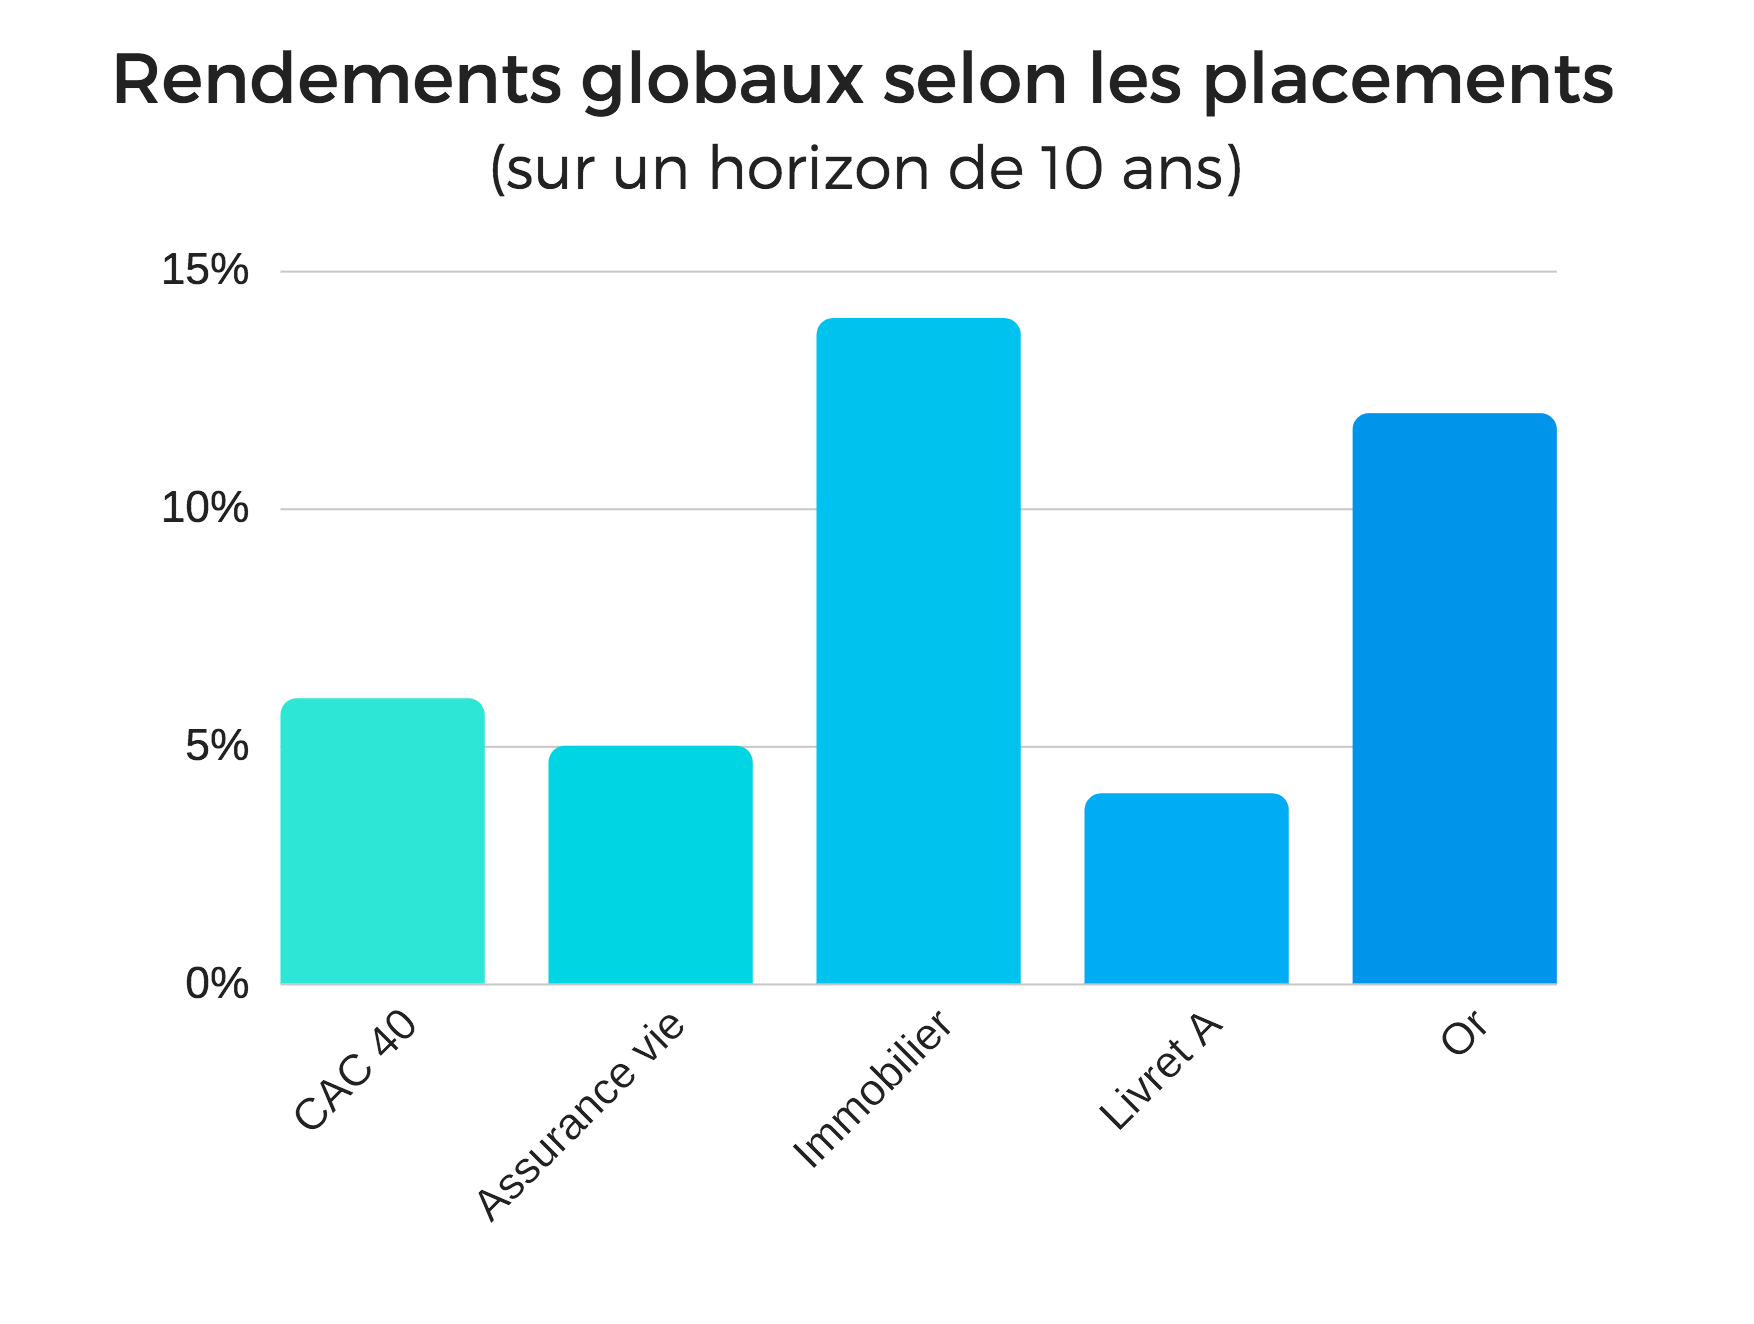 Rendements globaux